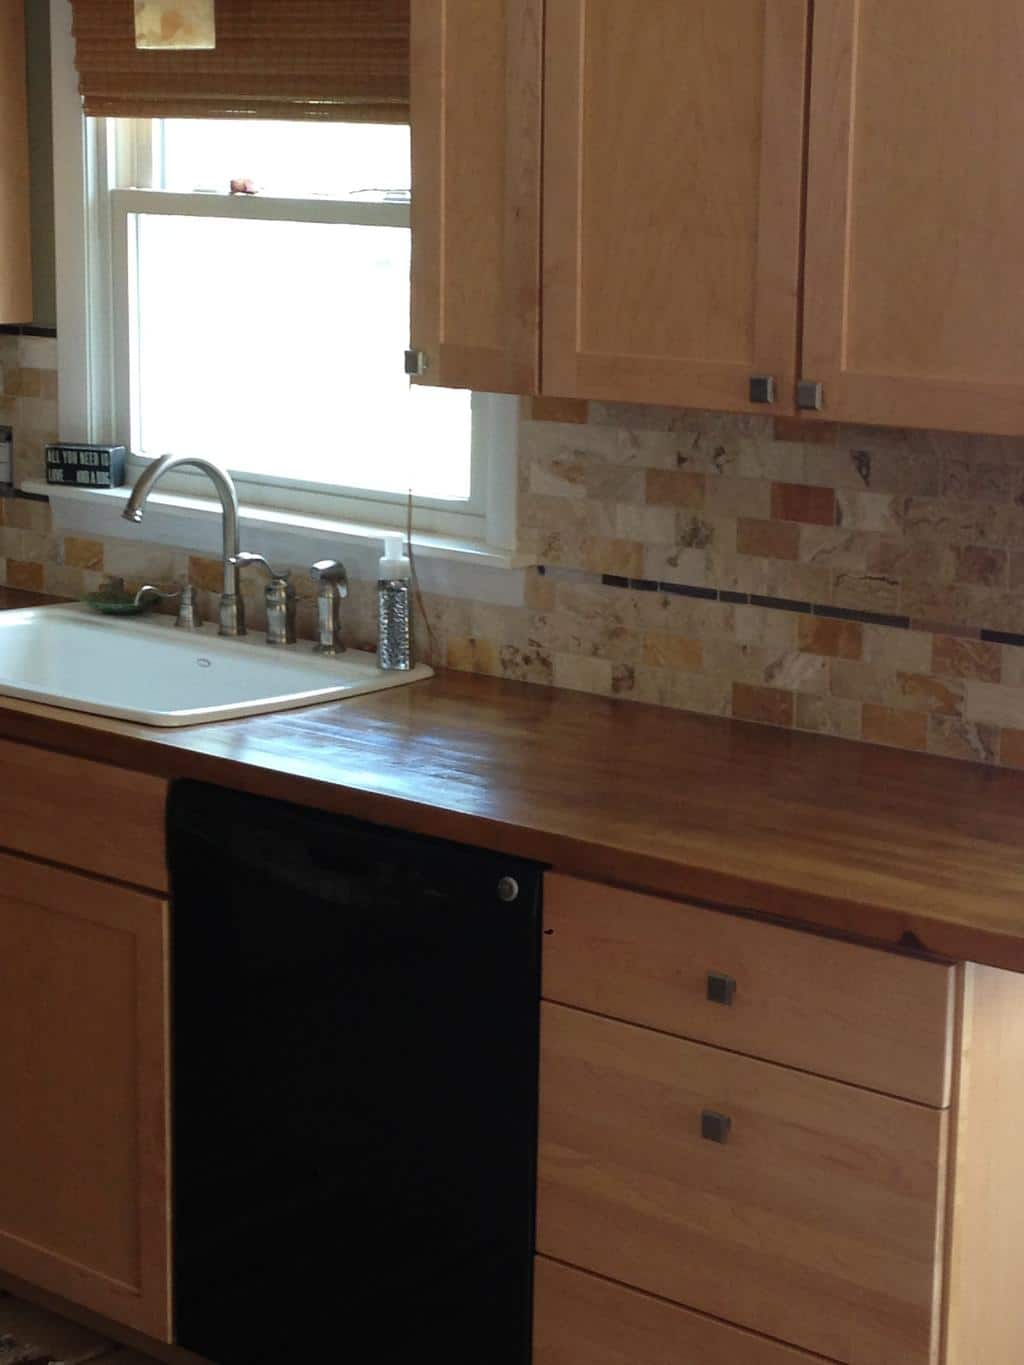 Travertine Tile Backsplash 2 Cabinet Girls